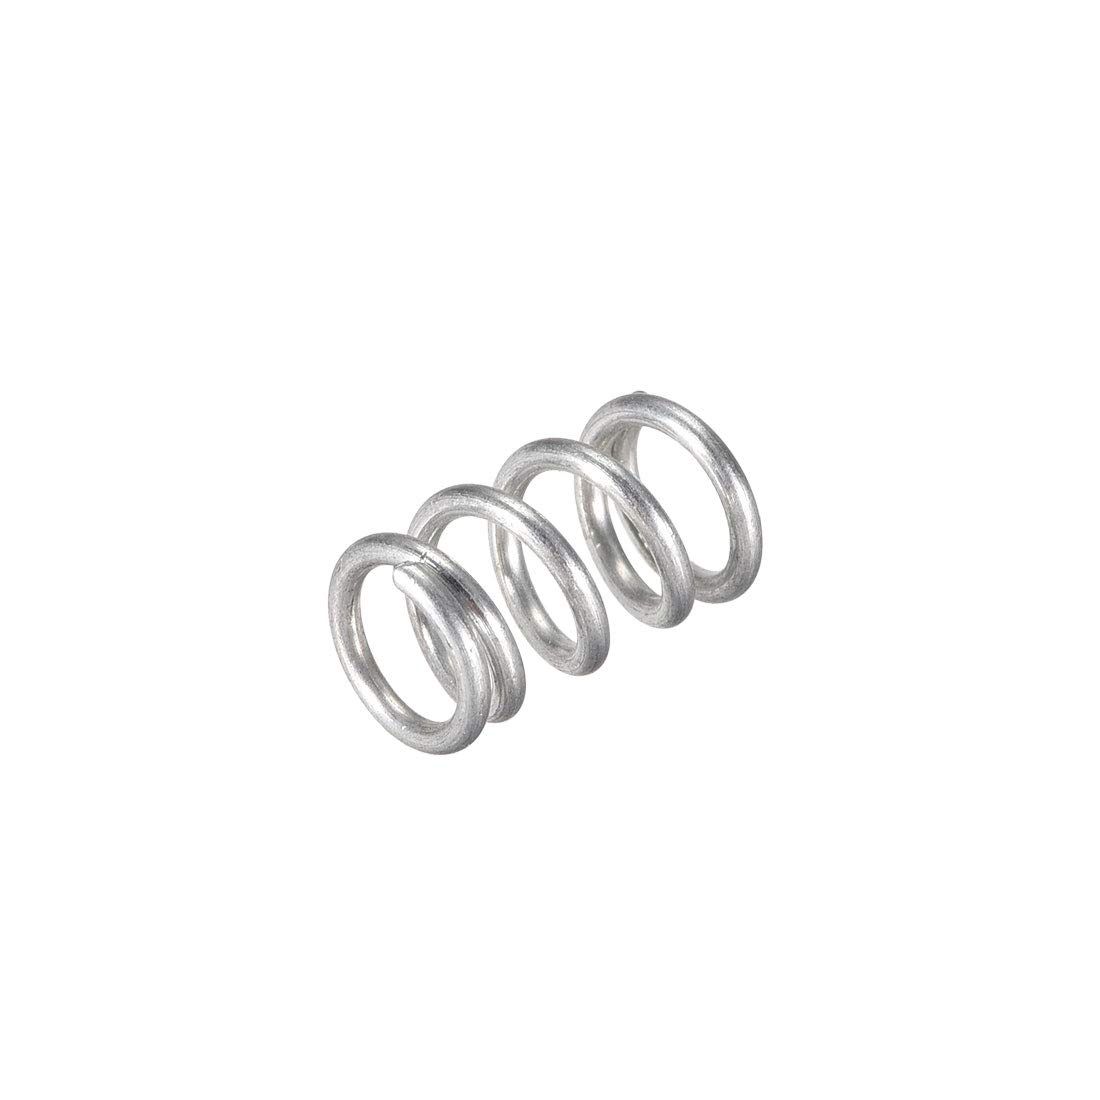 uxcell Heated Bed Springs for 3D Printer Extruder Compression Spring, 7 X 12mm 30pcs